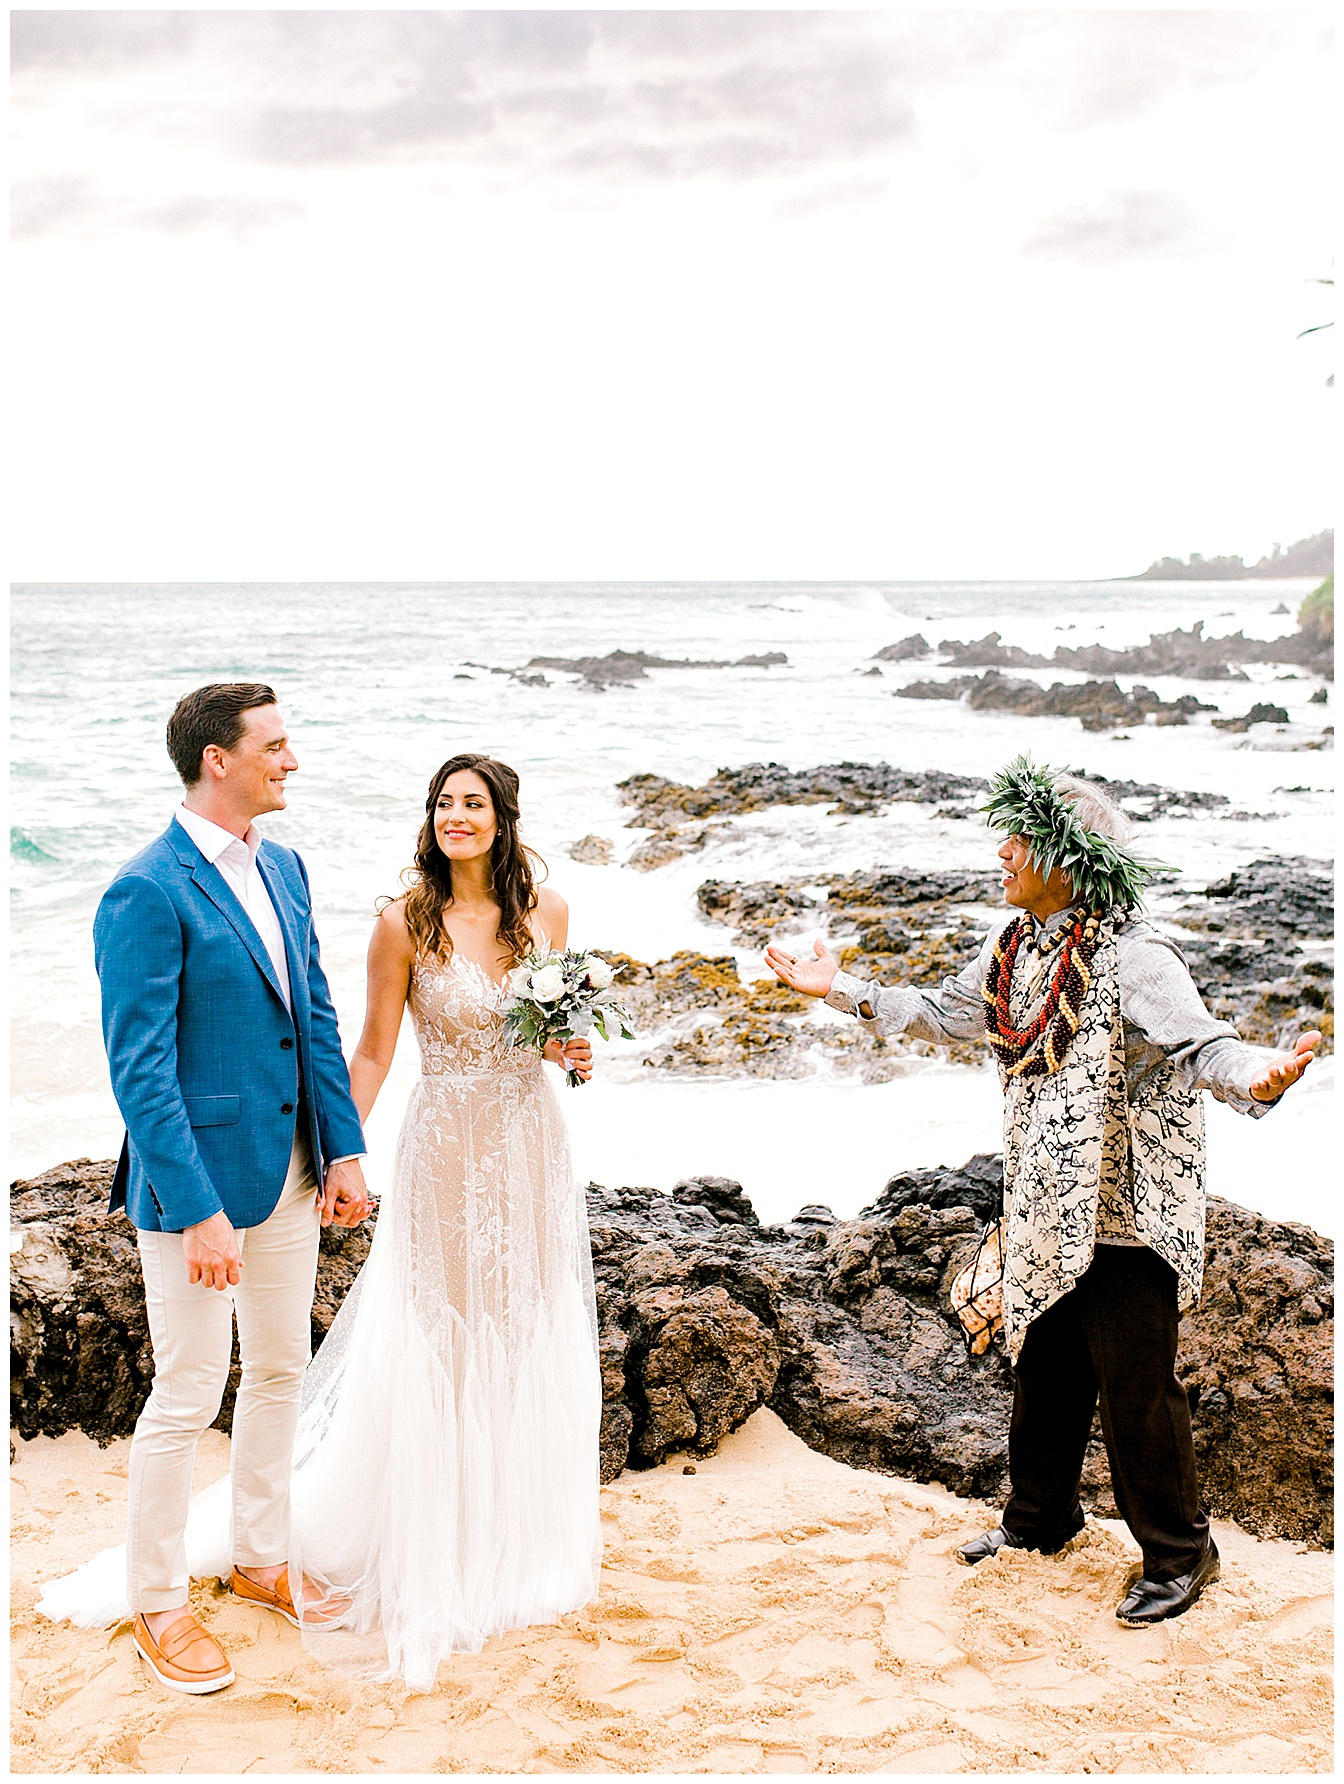 Makena-Cove-Maui-Elopement_0002.jpg